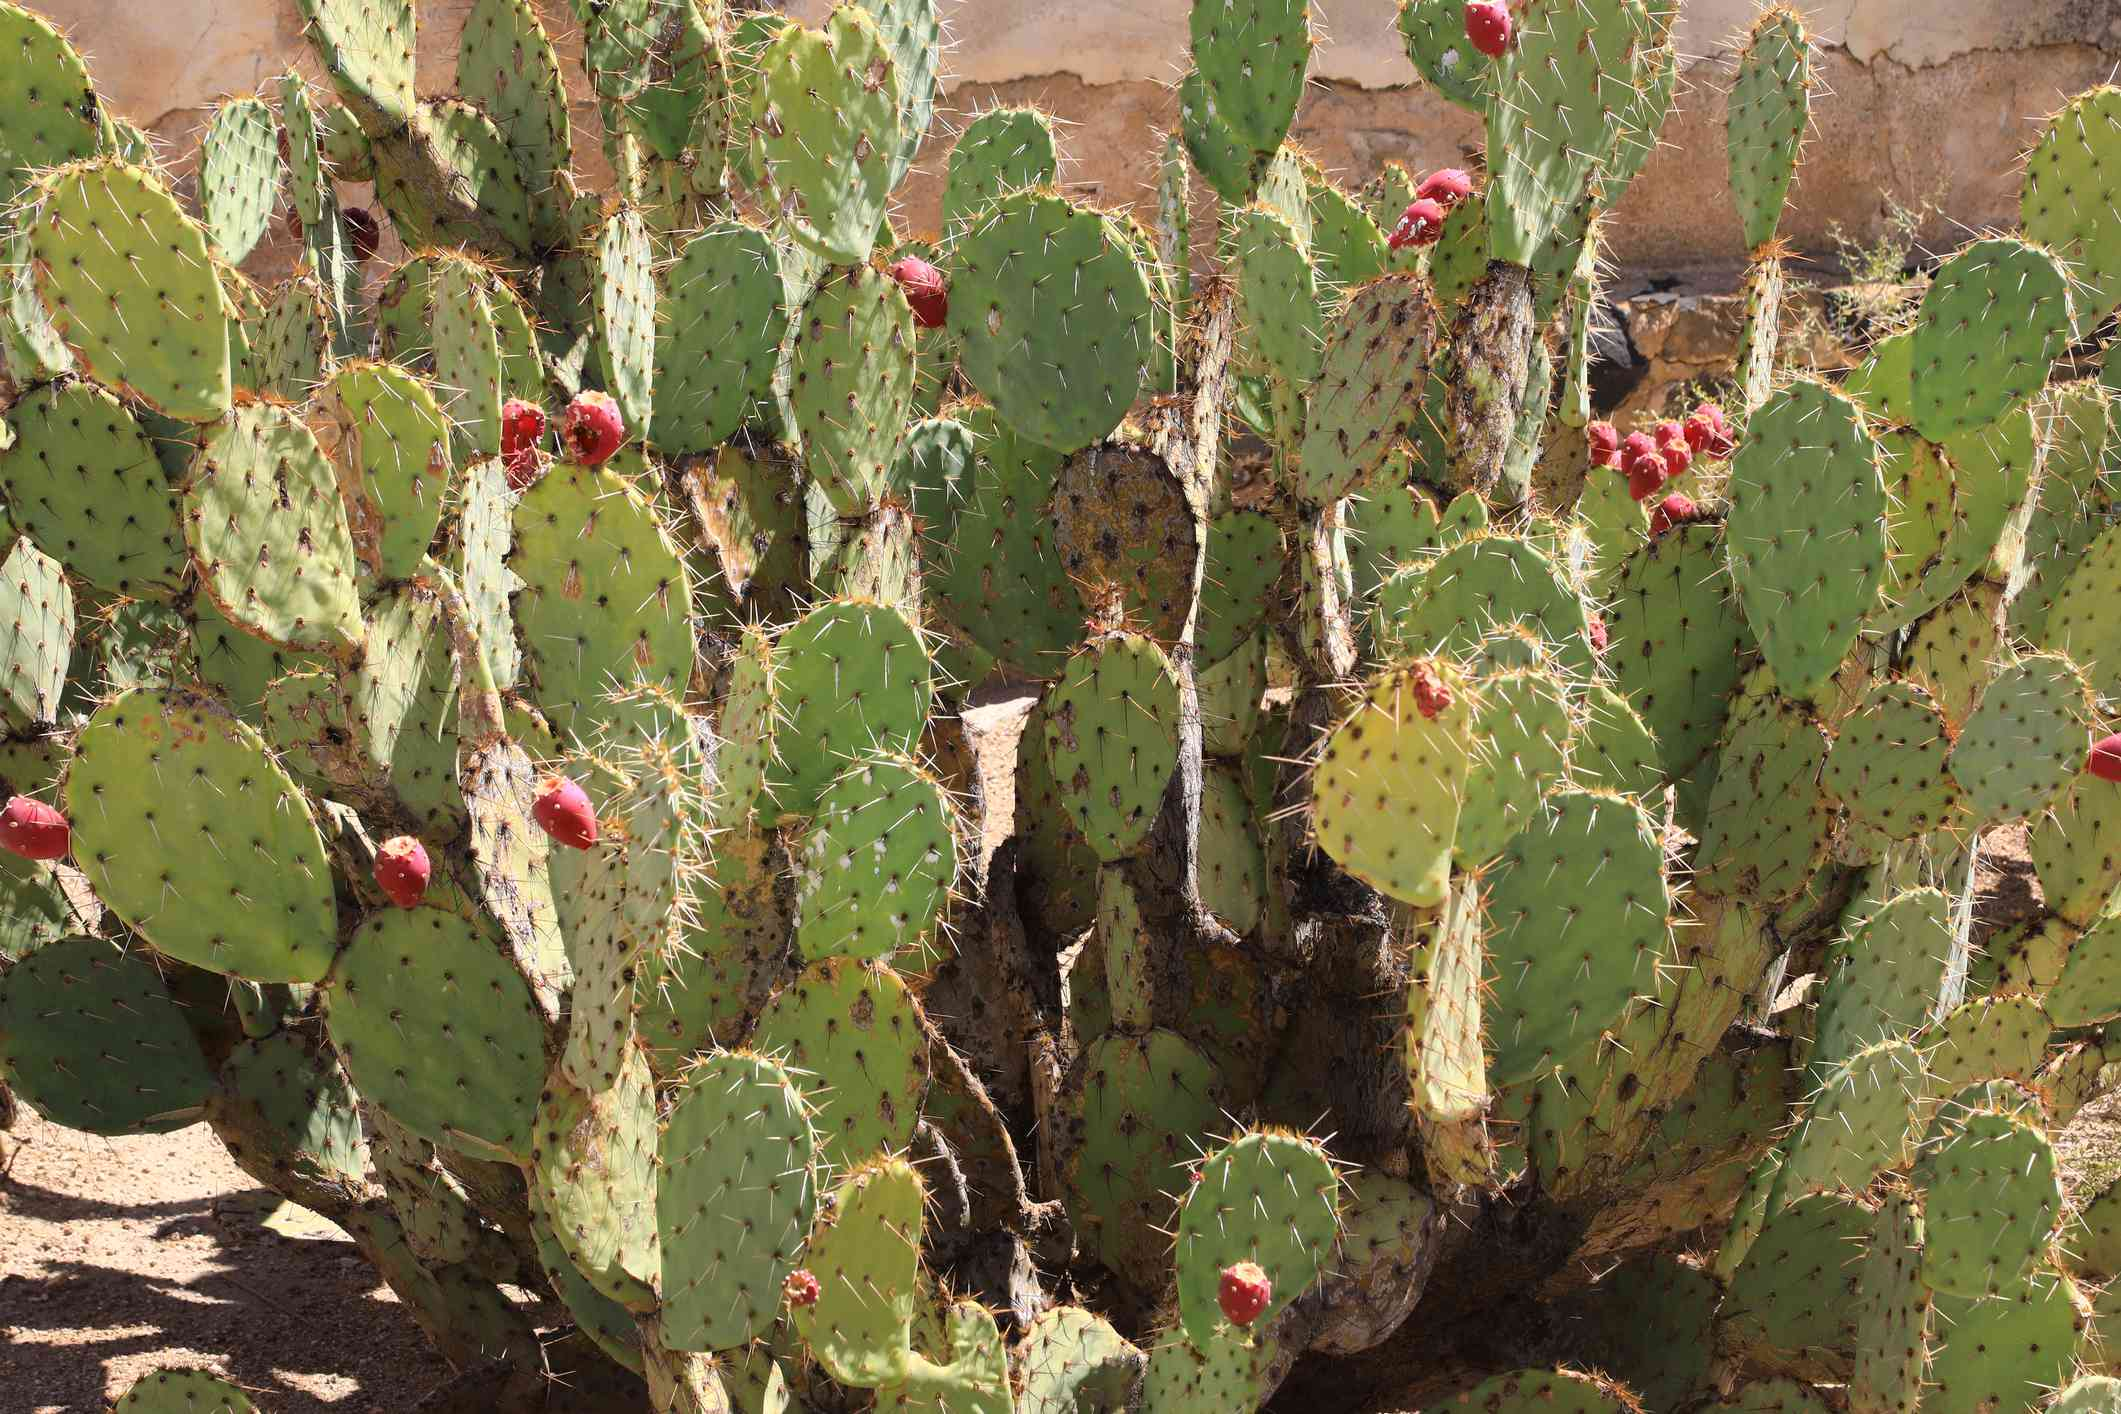 Prickly pear cactus with fruit.